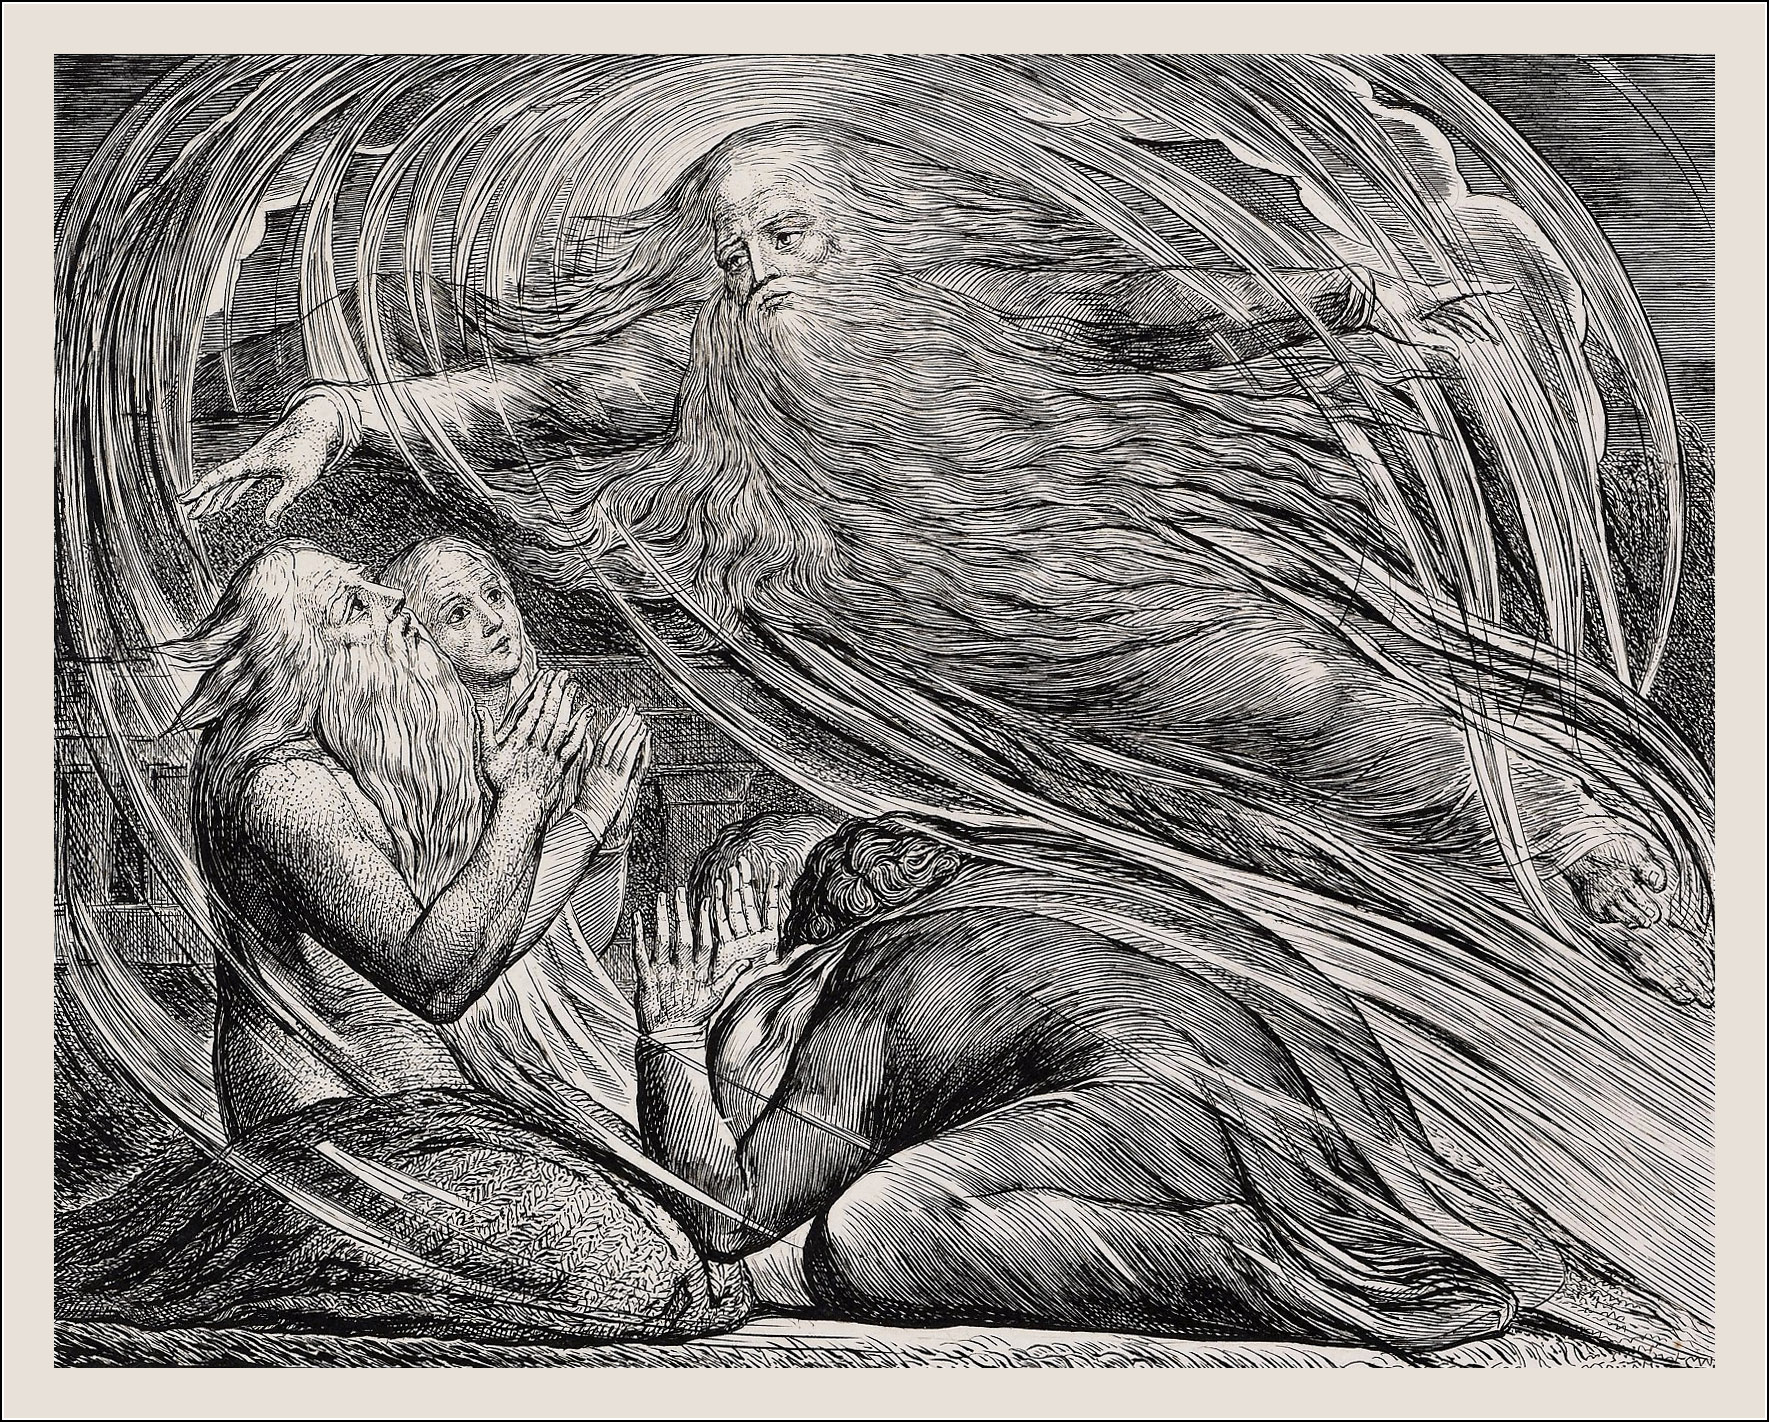 William Blake, Book of Job